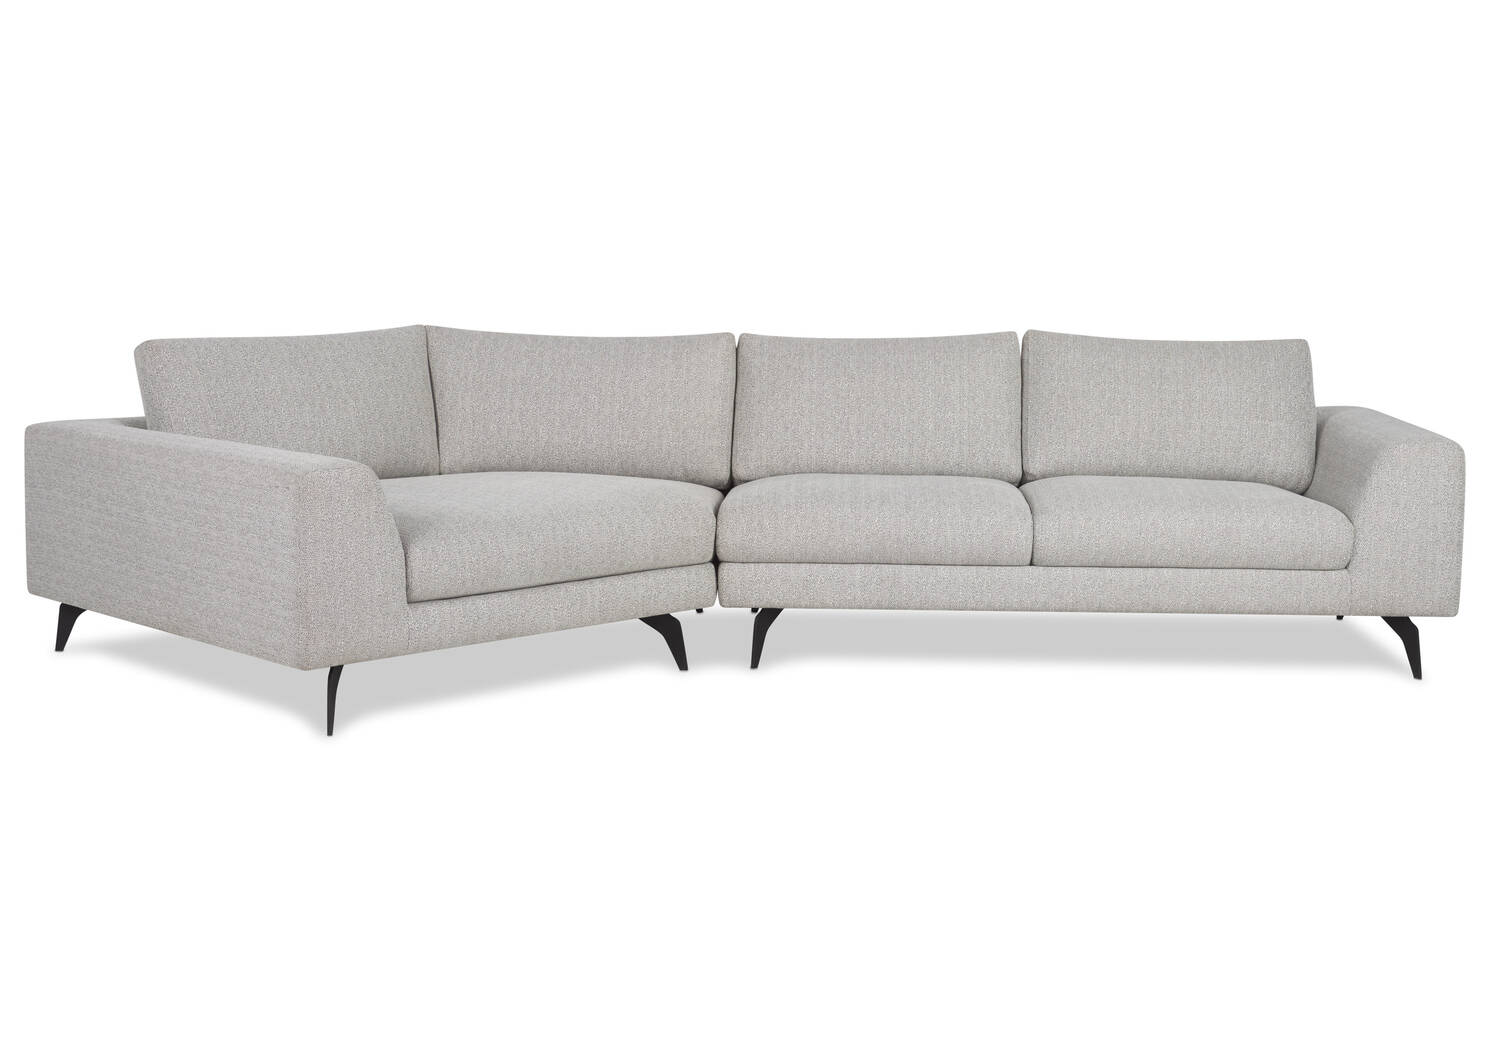 Altamira Sofa Chaise -Mina Dove, LCF